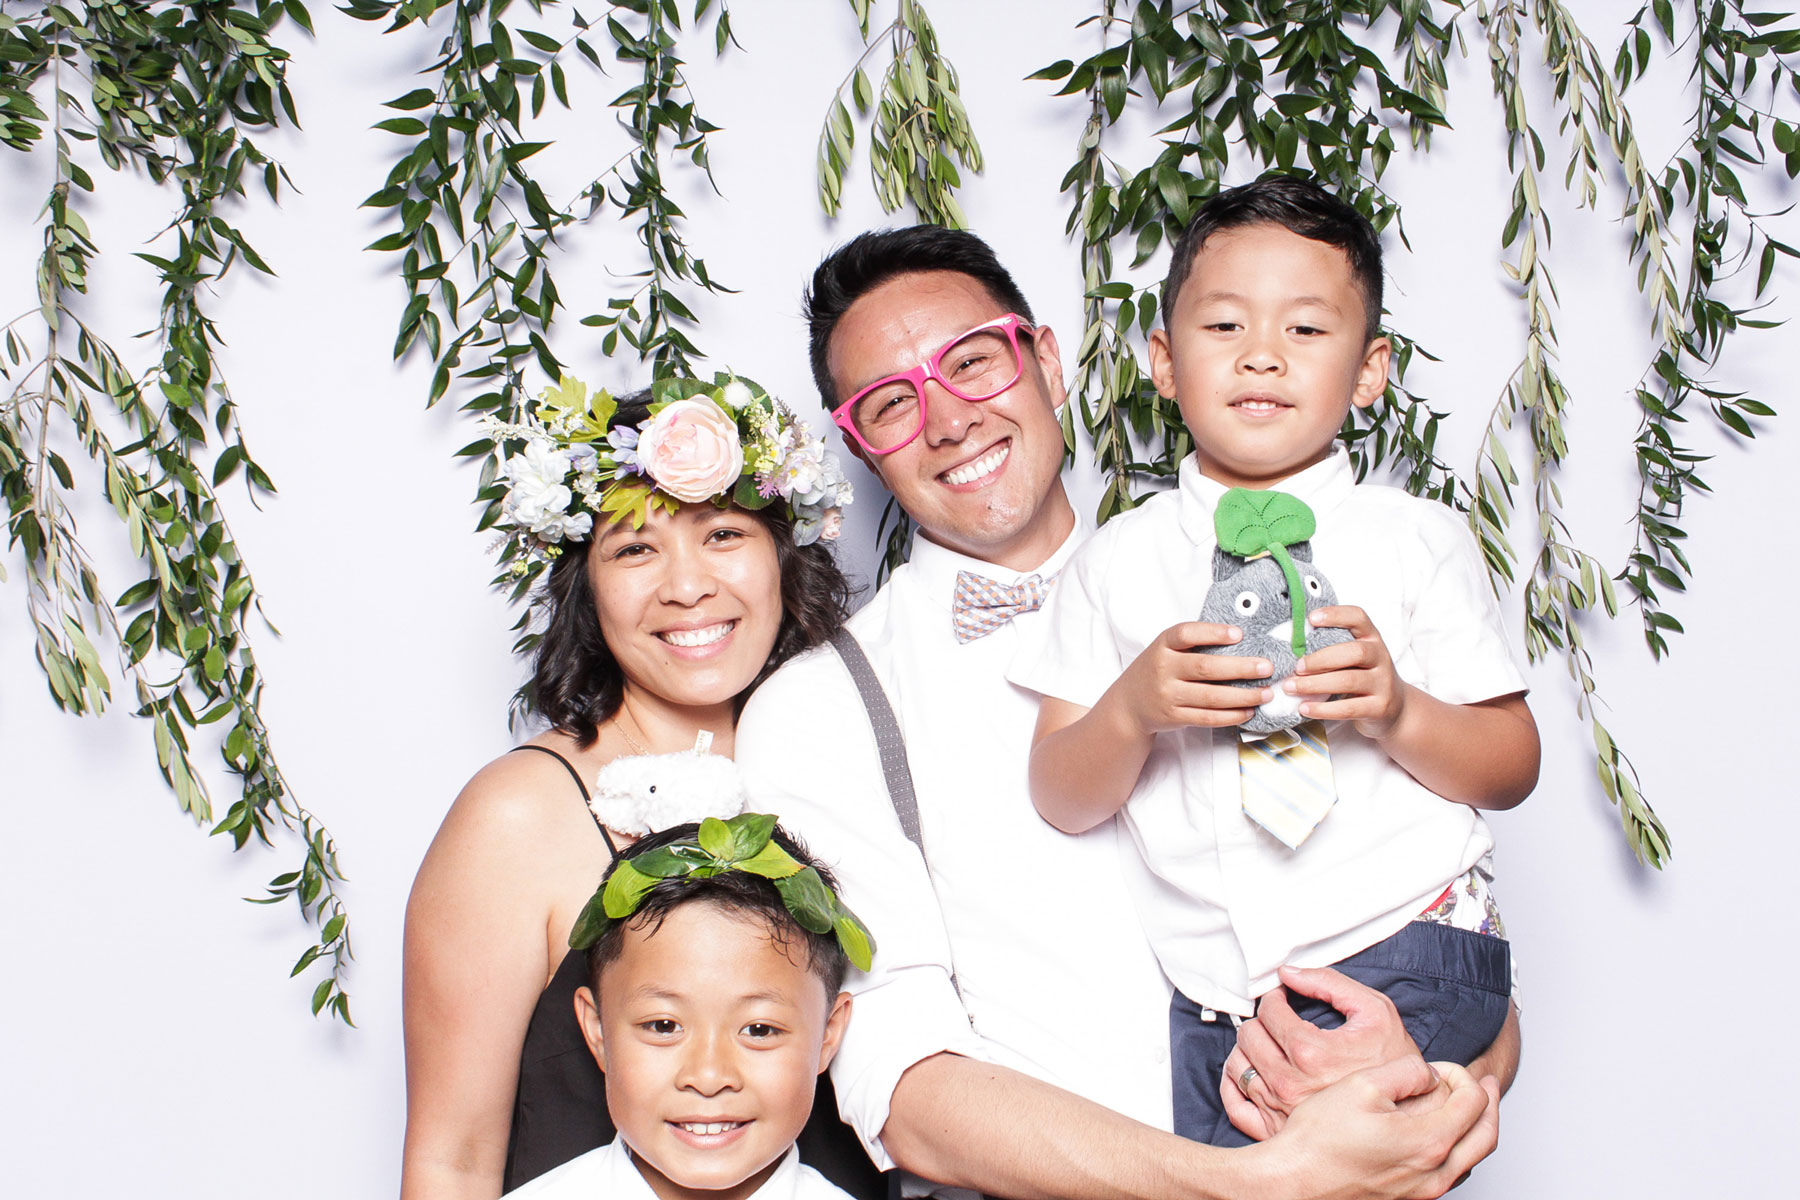 Make Your Wedding Photo Booth Unique! | The SnapBar